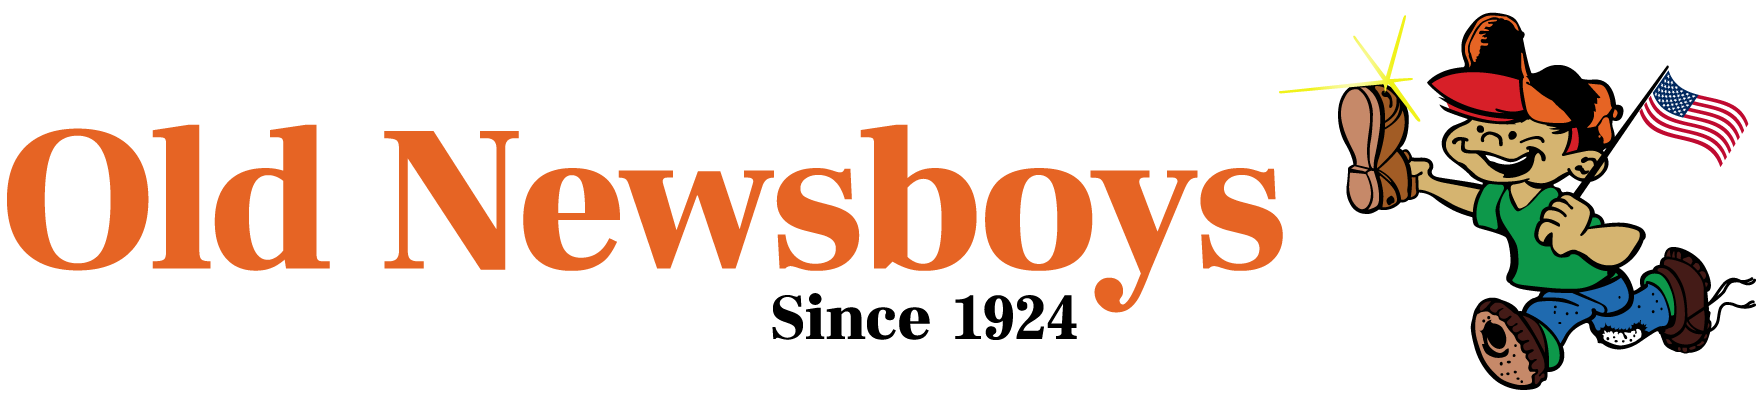 Old Newsboys logo